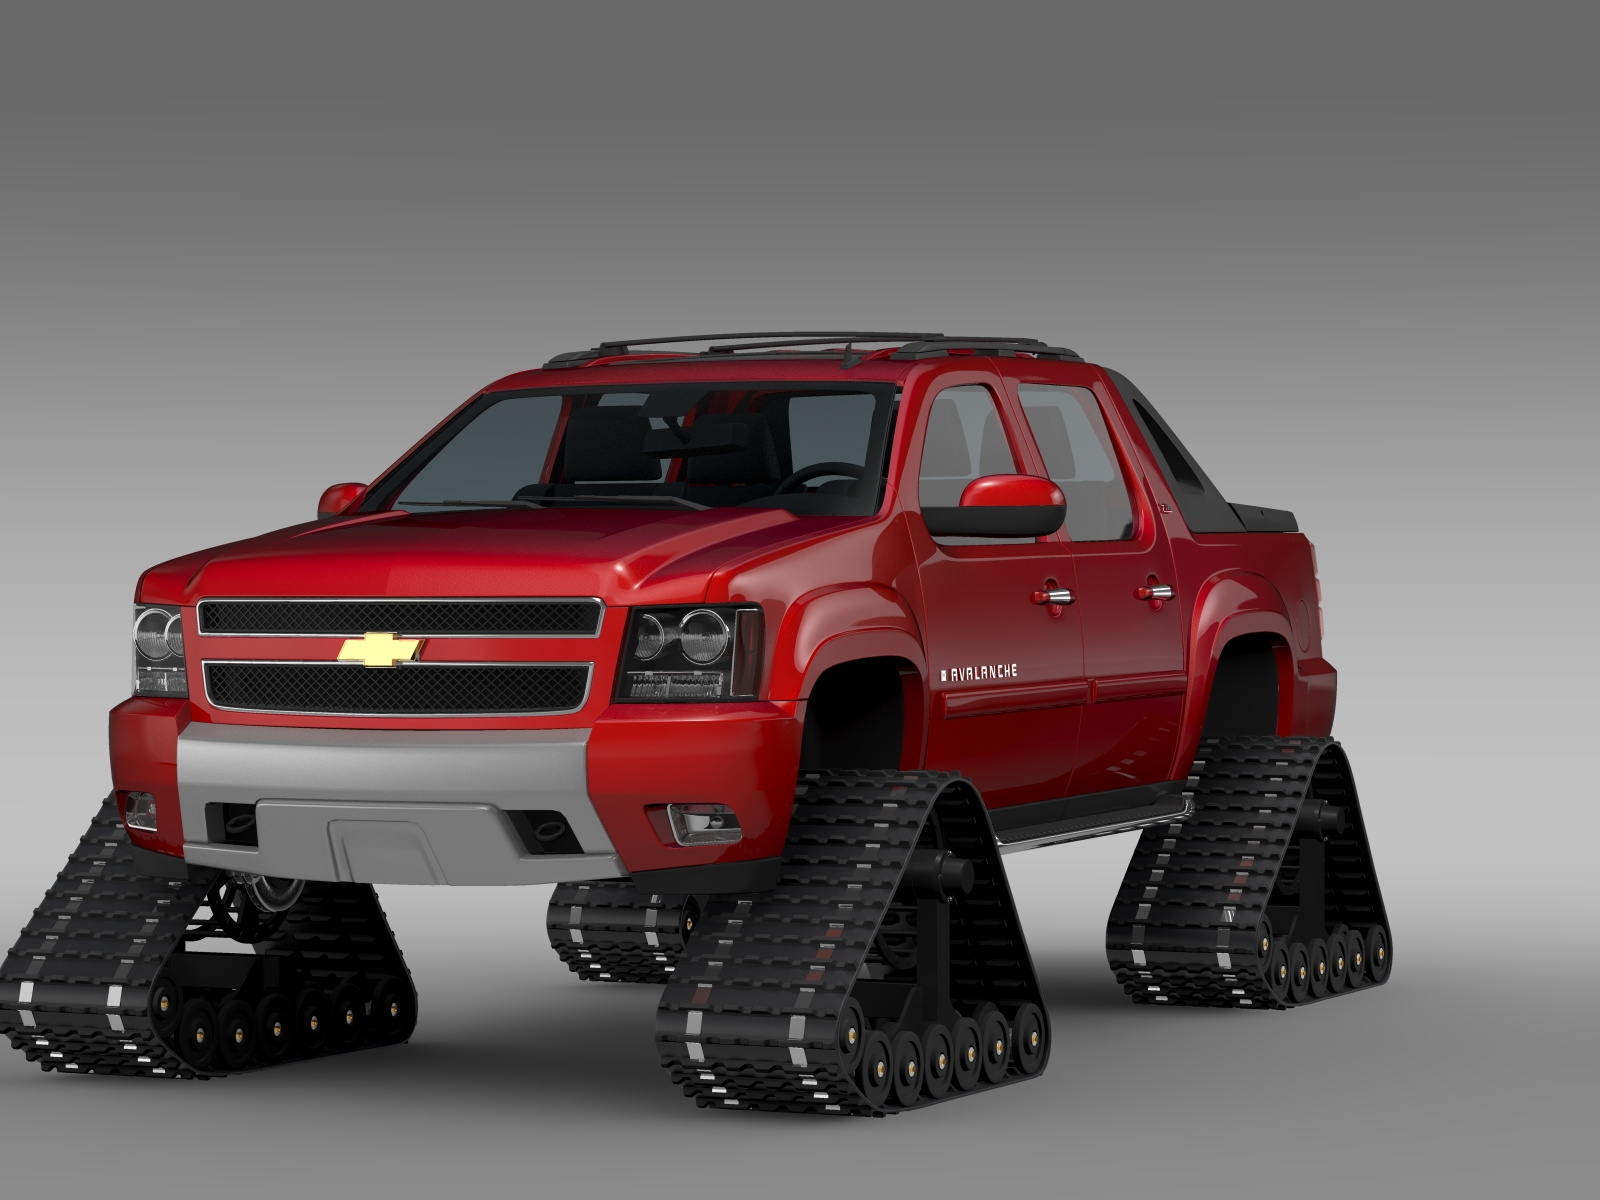 Chevrolet avalanche z71 crawler 3d model vehicles 3d models detail chevrolet avalanche z71 crawler 3d model 0 sciox Image collections